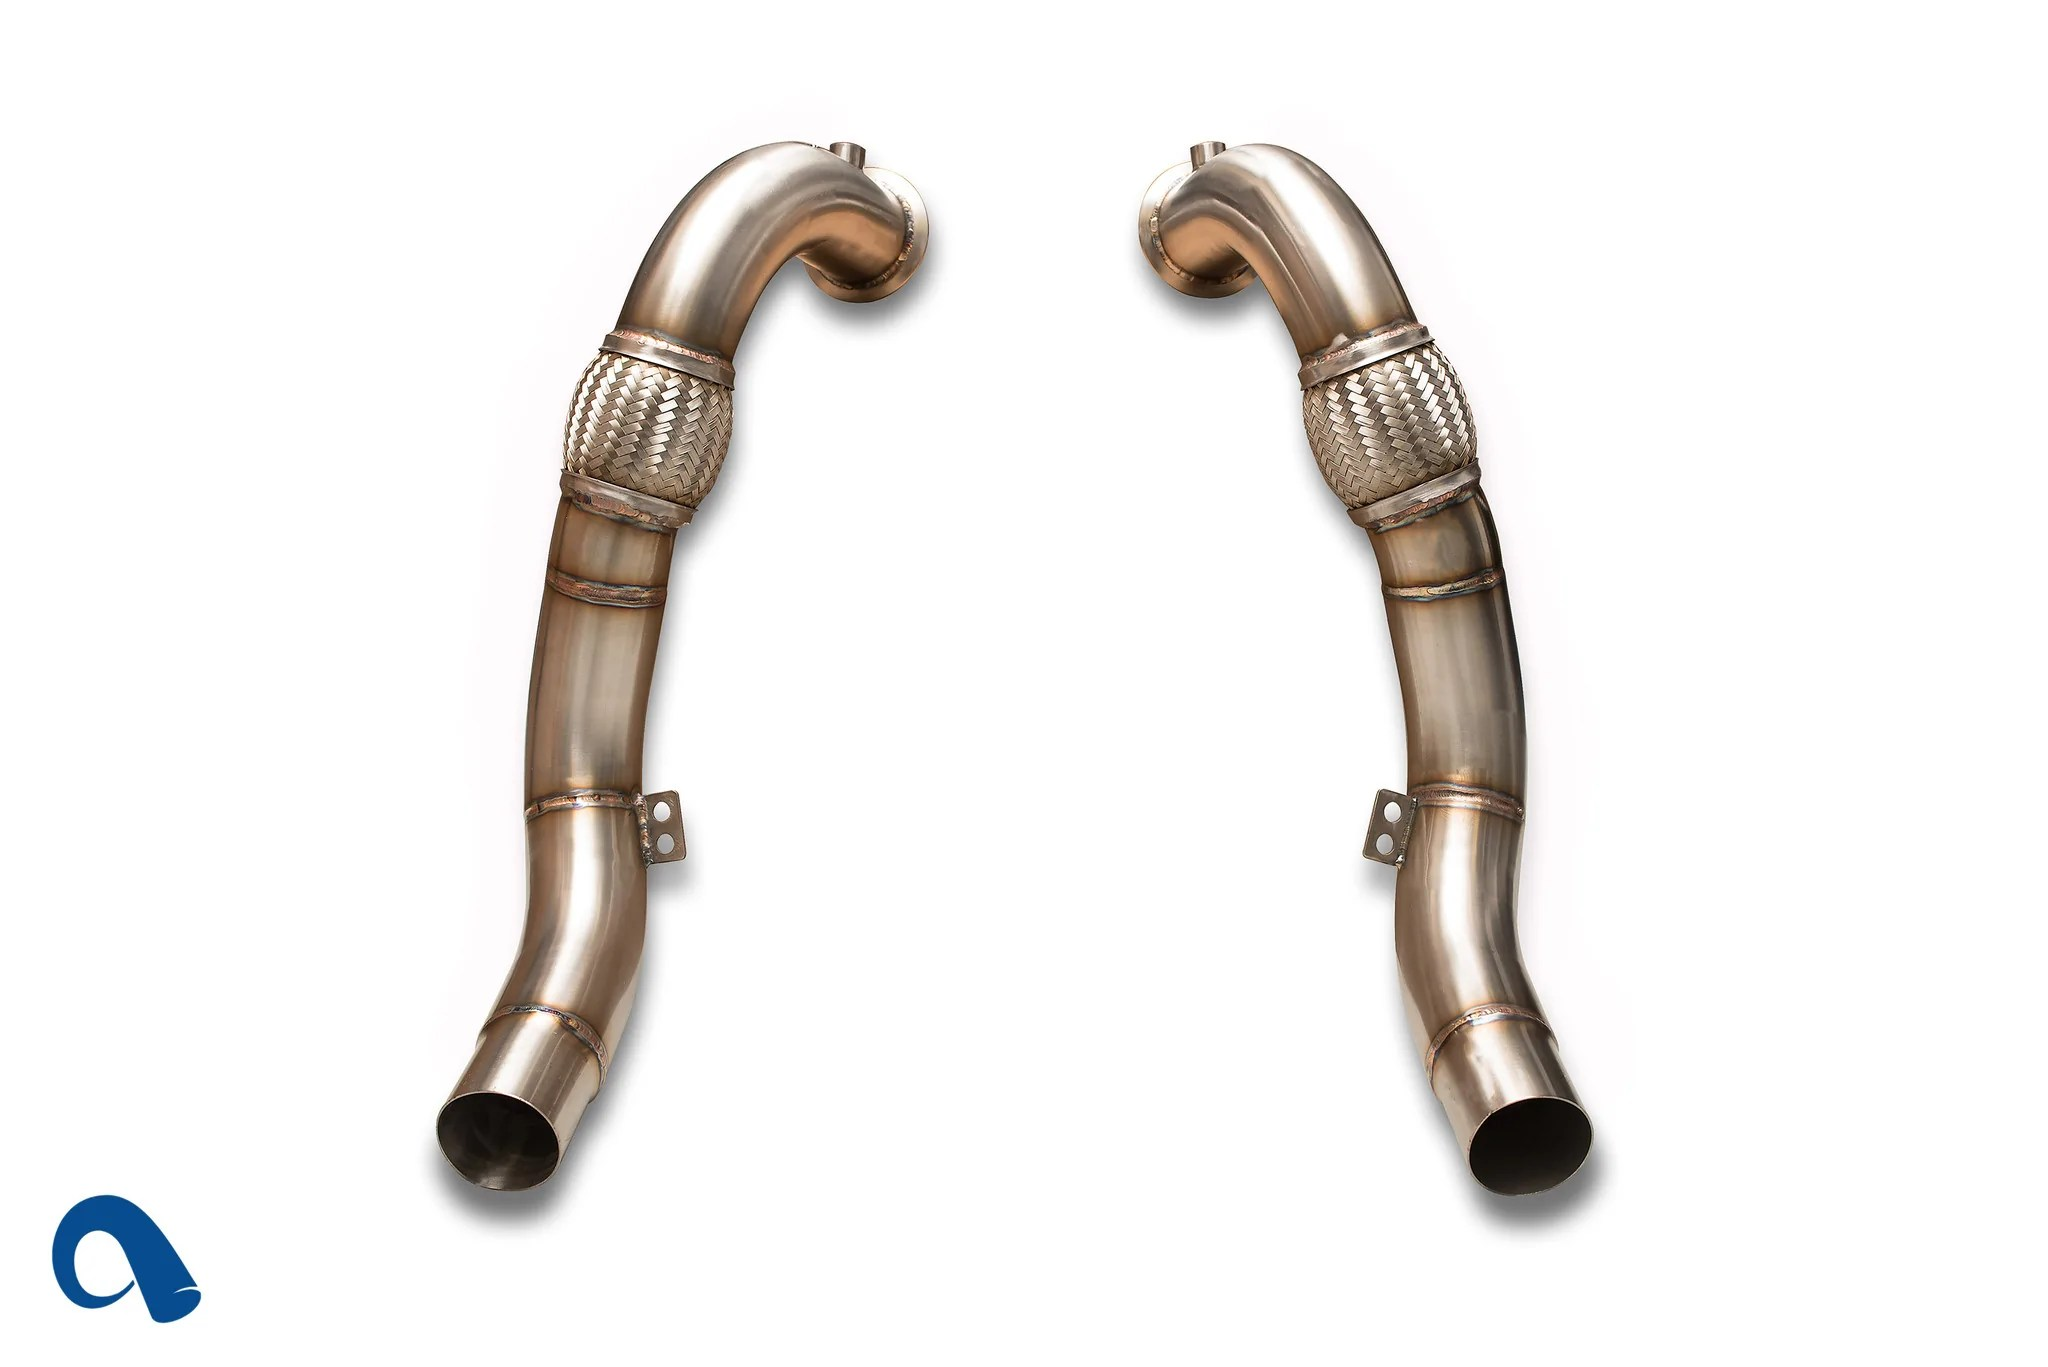 medium resolution of bmw n63 downpipes for twin turbo v8 bmw x5 and x6 f10 550i by bmw active autowerke